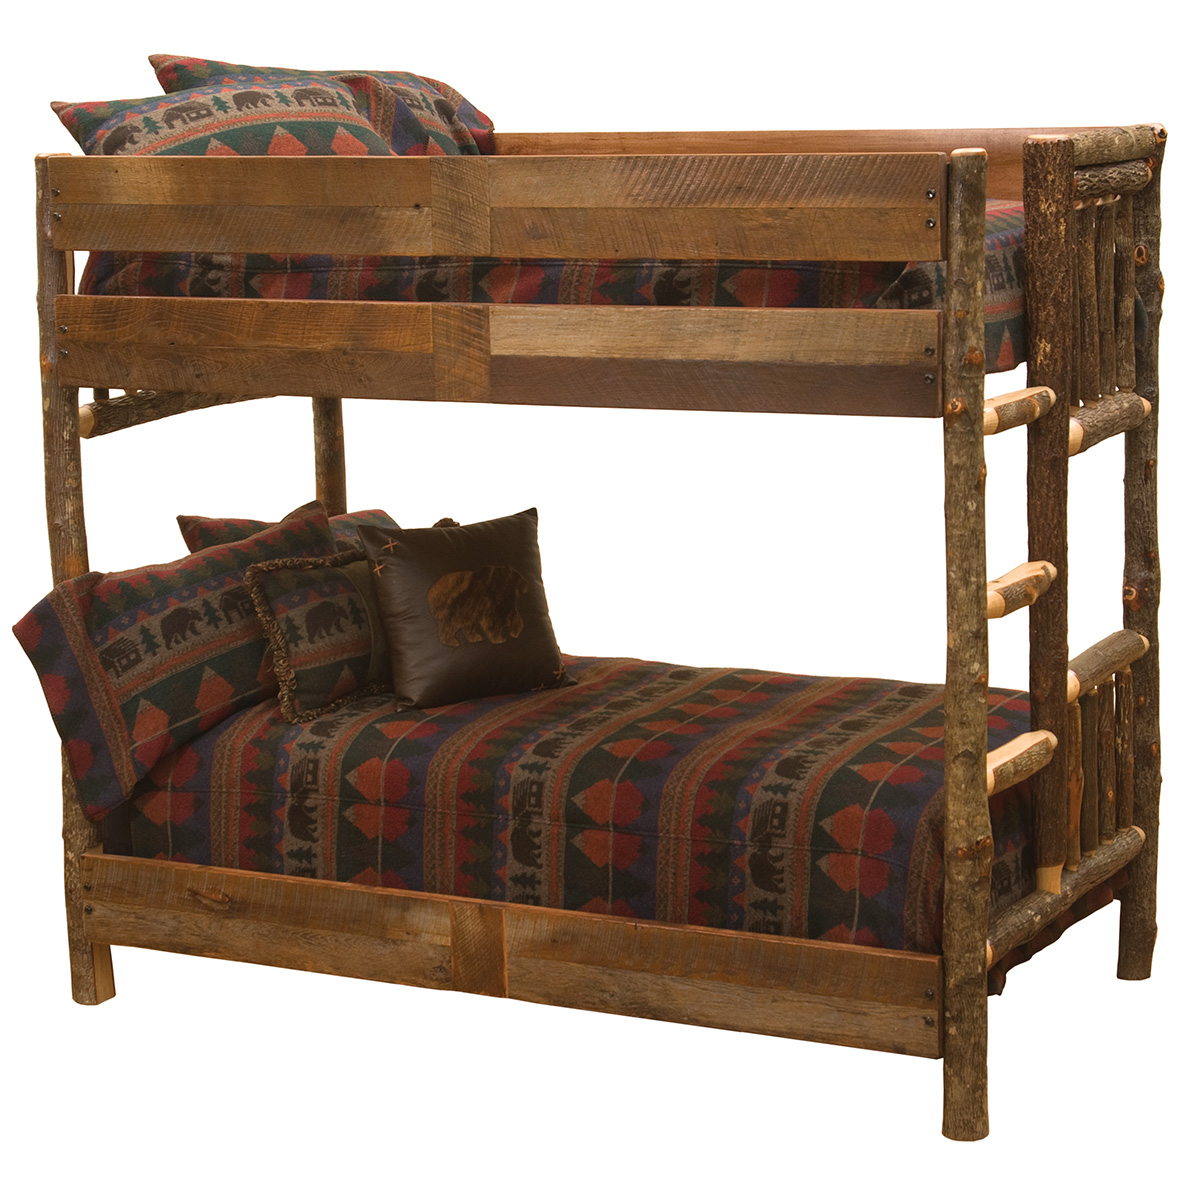 Black Forest Decor Hickory full/full bunk bed with barnwo...